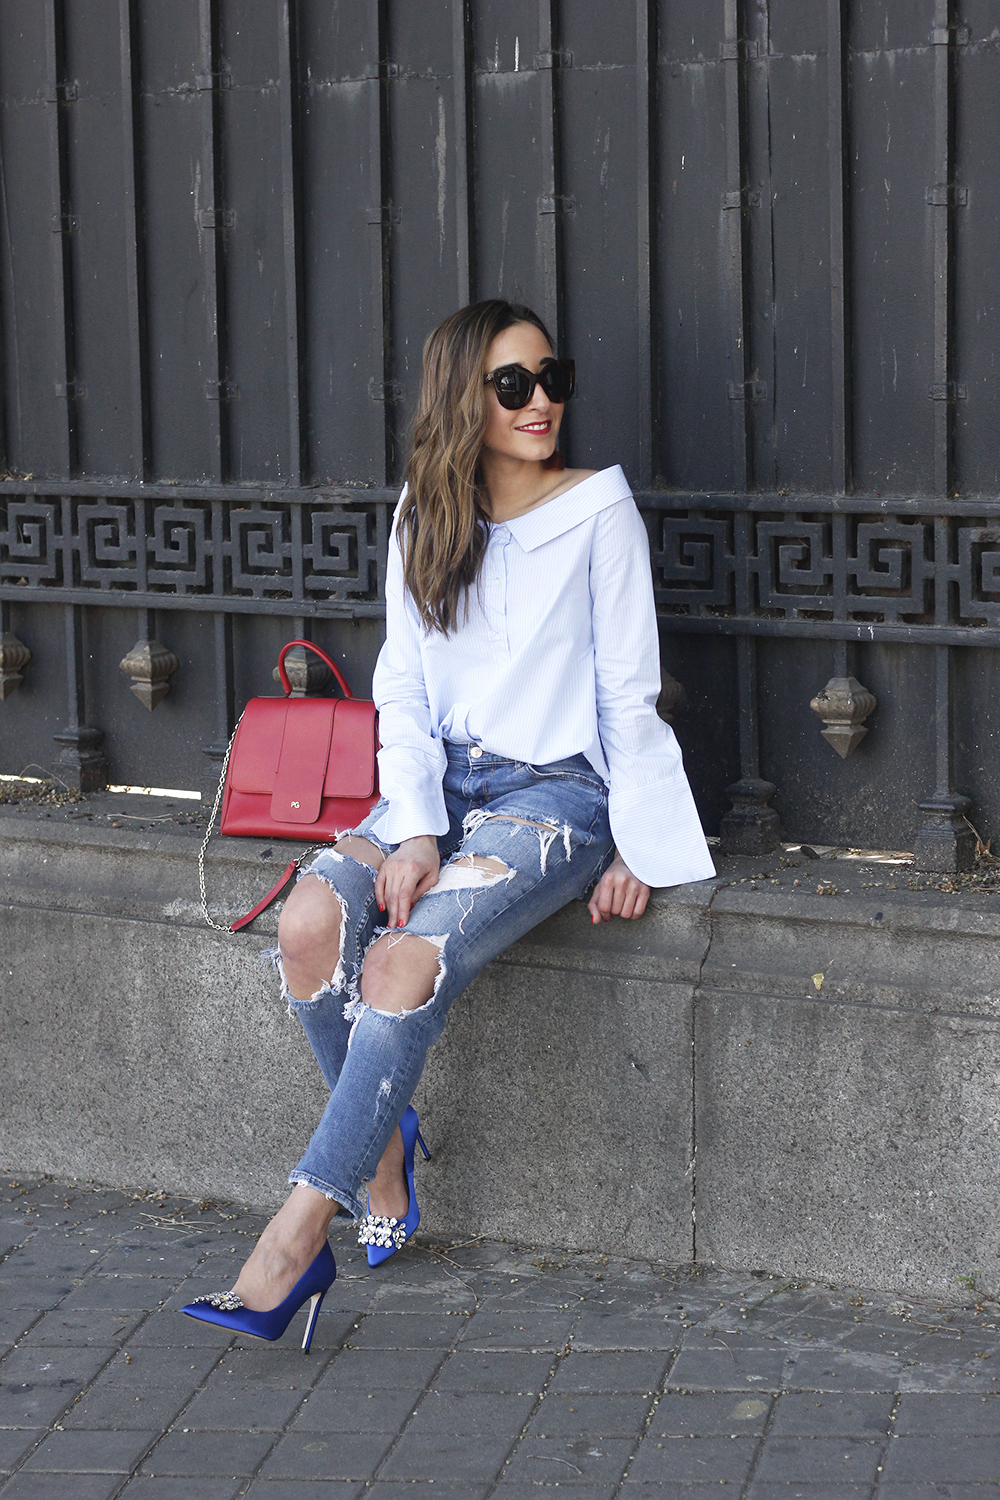 blue klein jewel heels uterqüe ripped jeans striped shirt red bag outfit style fashion12